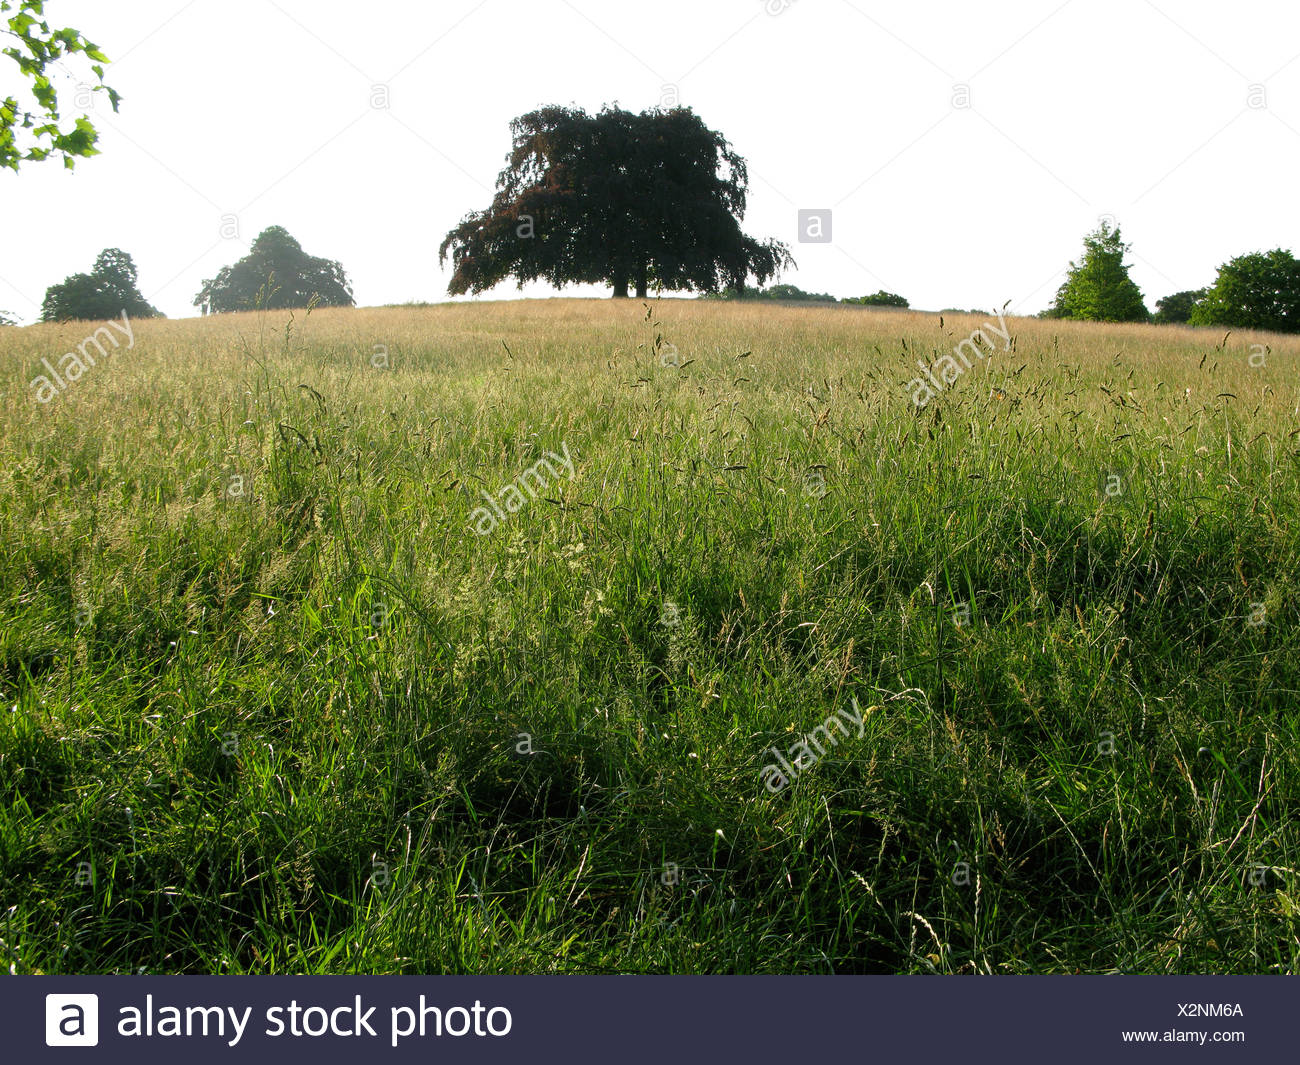 A tree in long grass in summertime - Stock Image